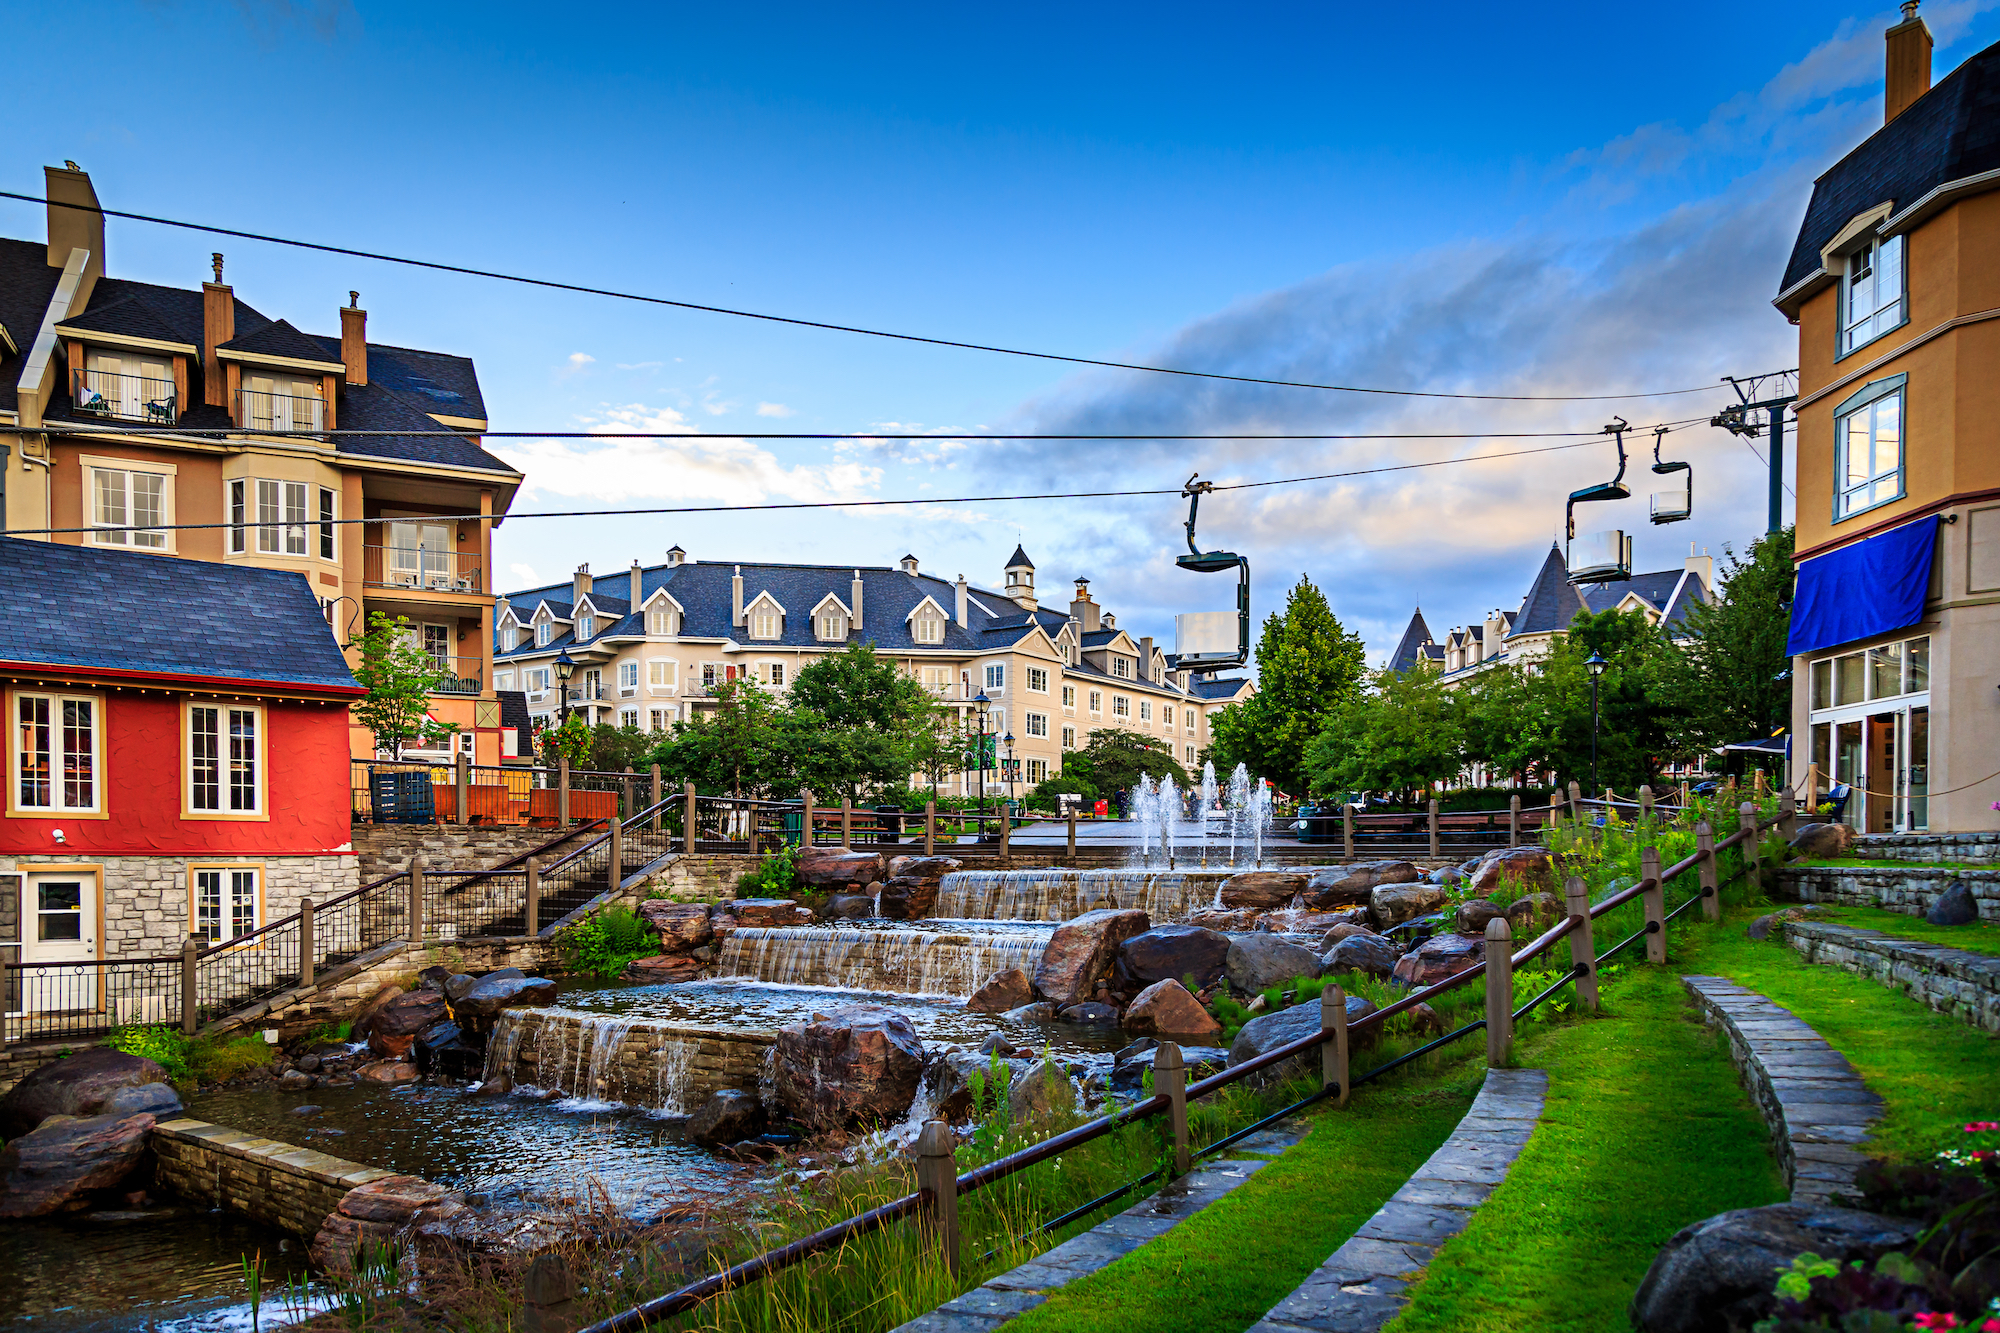 Mont-tremblant village on a beautiful day.